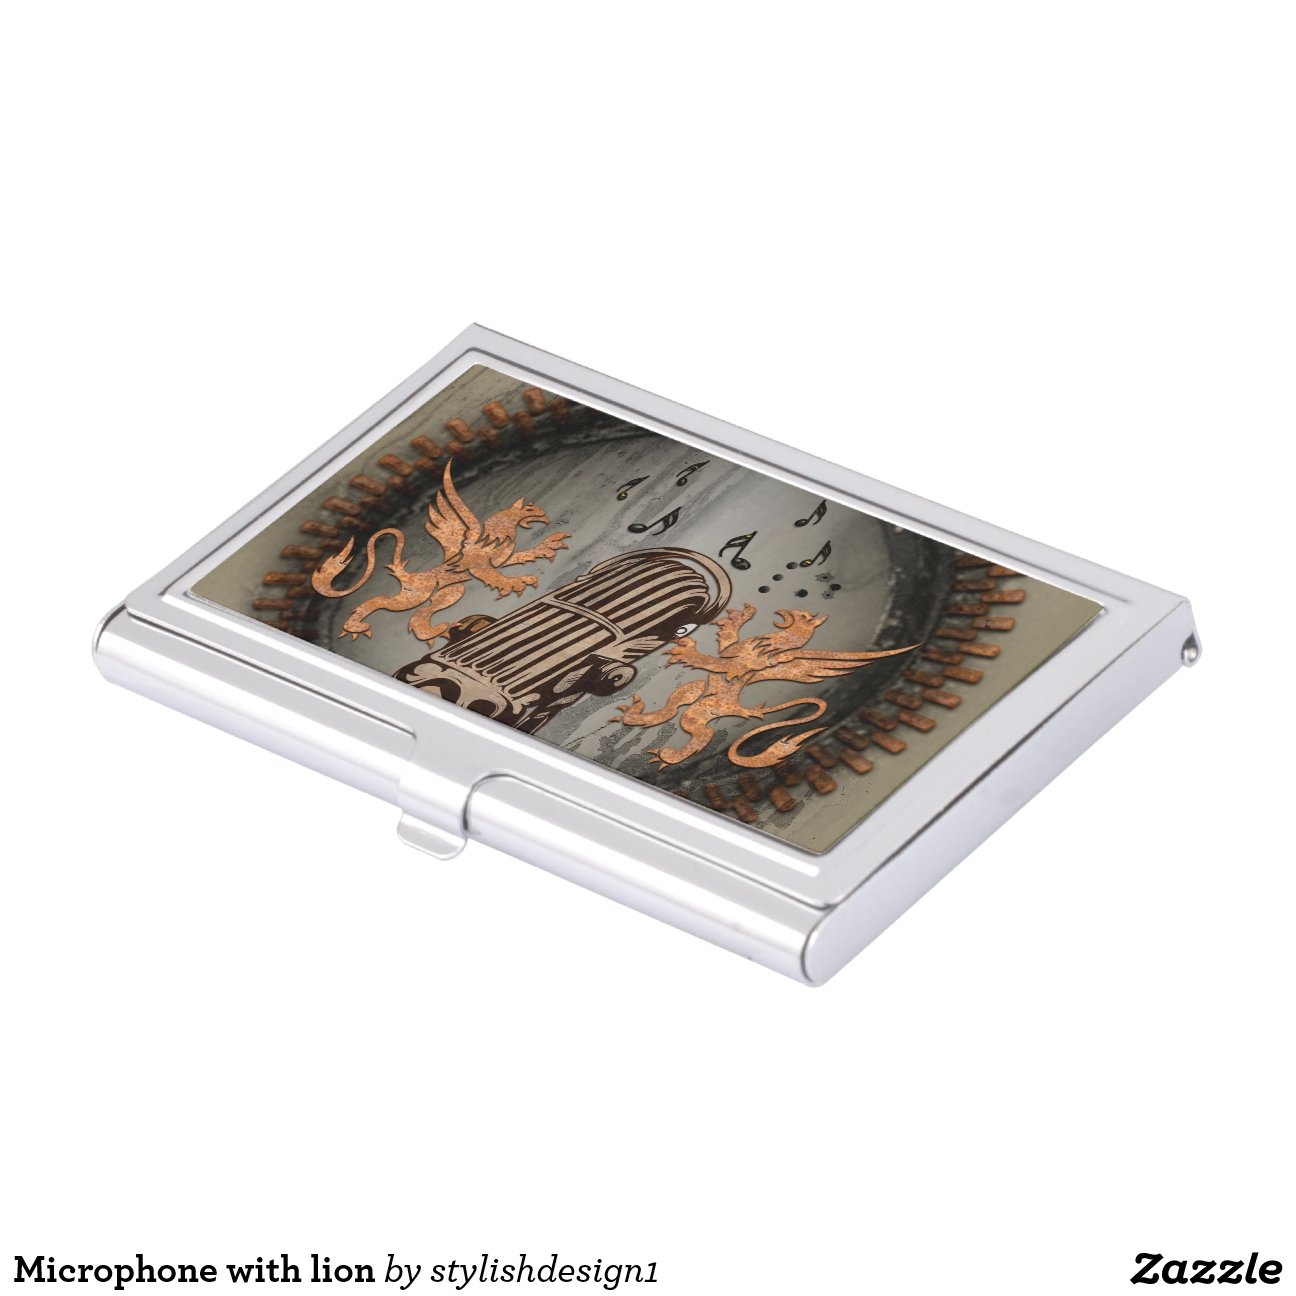 Spinning Business Card Holder Microphone With Lion Business Card Holder Rbfacdacedccfeac Zhvq